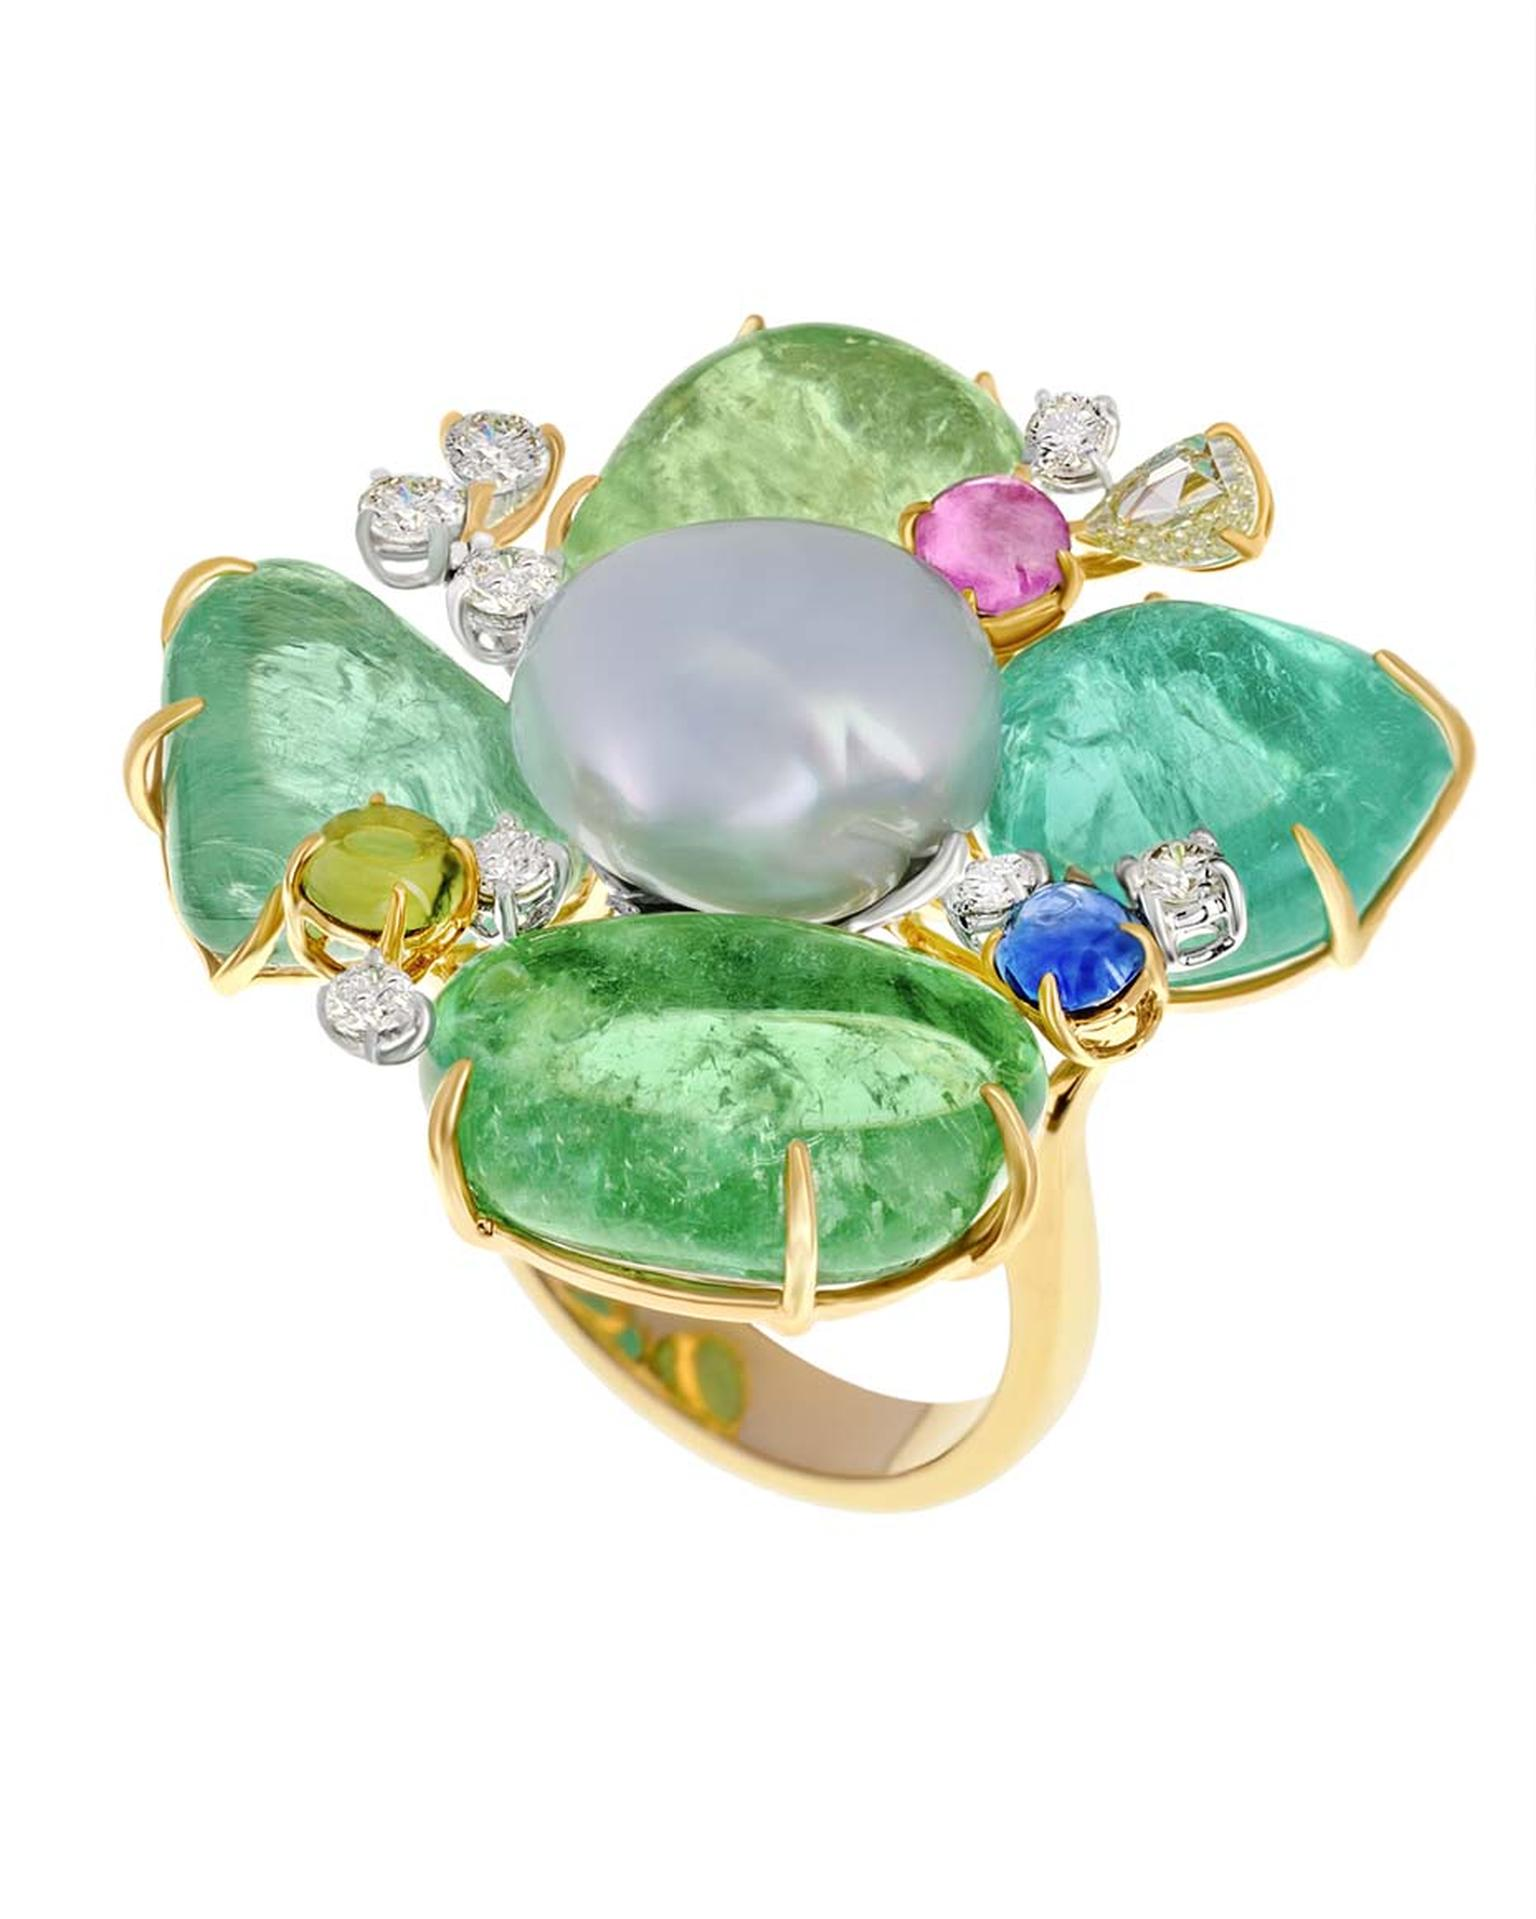 Margot McKinney Paraiba Petal Flower ring with a centre pearl.